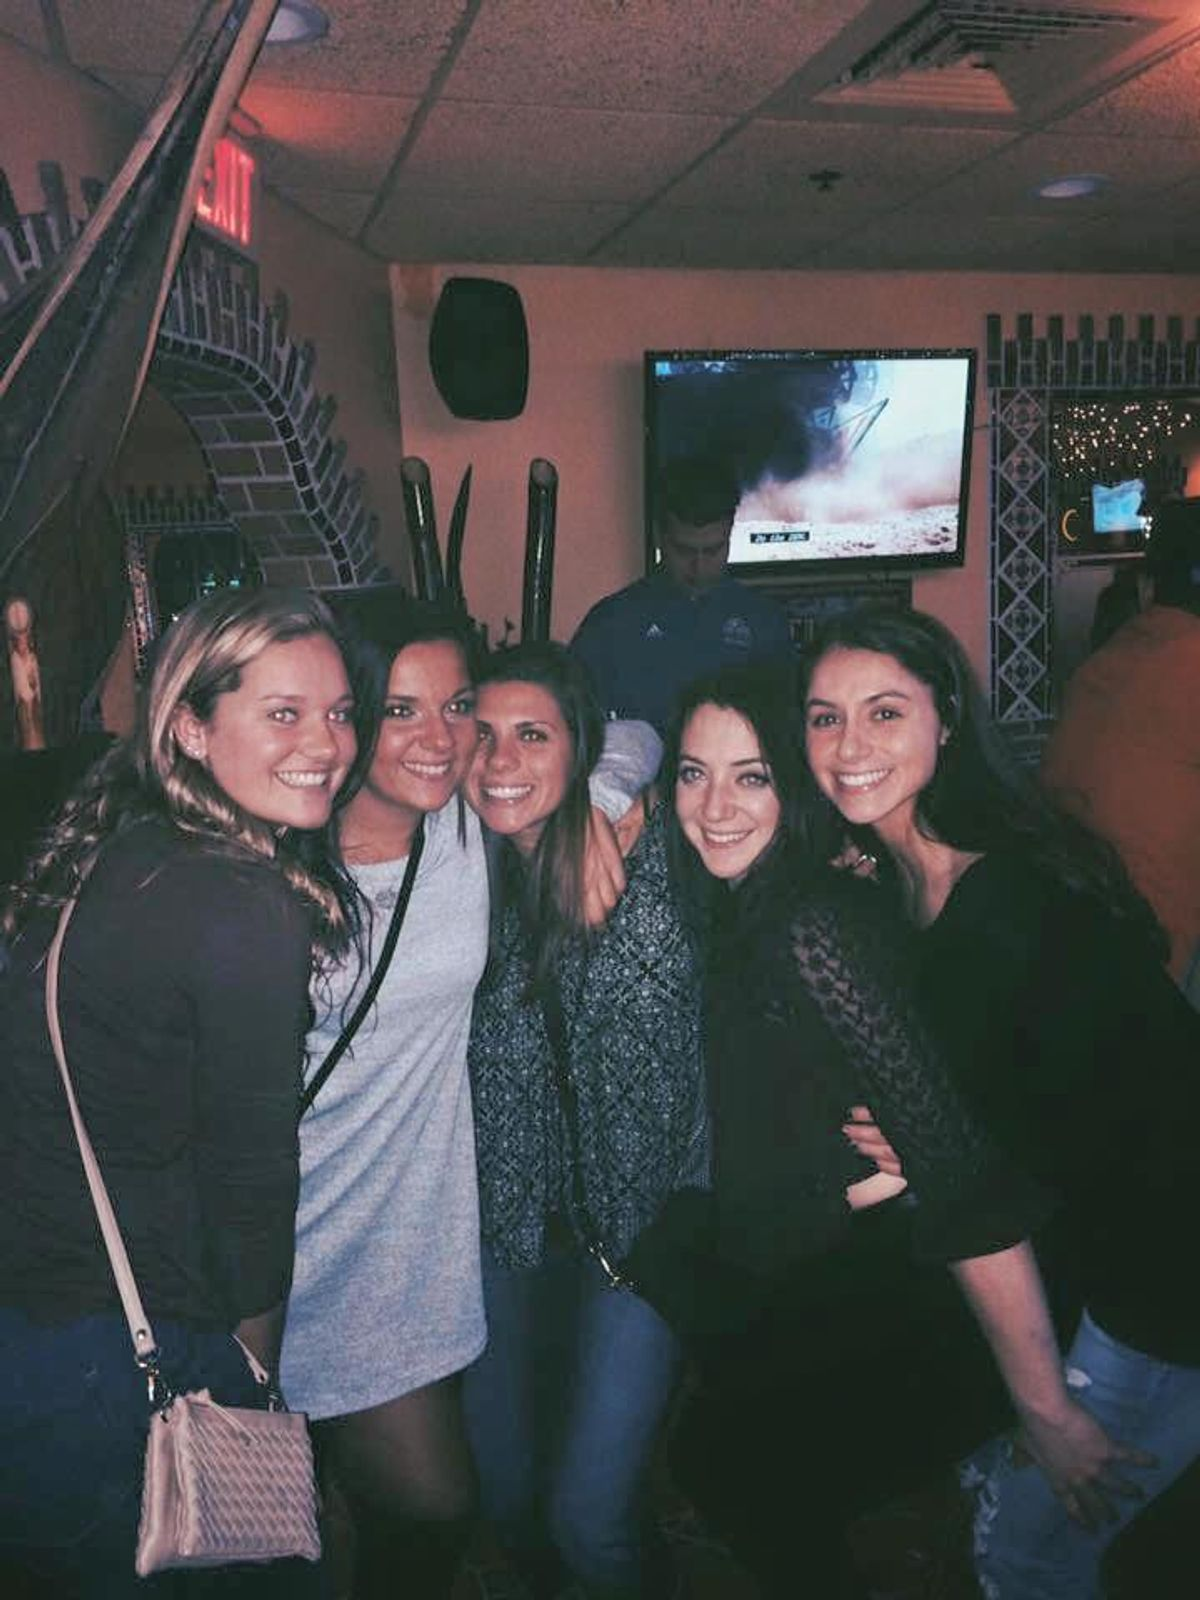 Reminiscing On Good Times With Good Friends